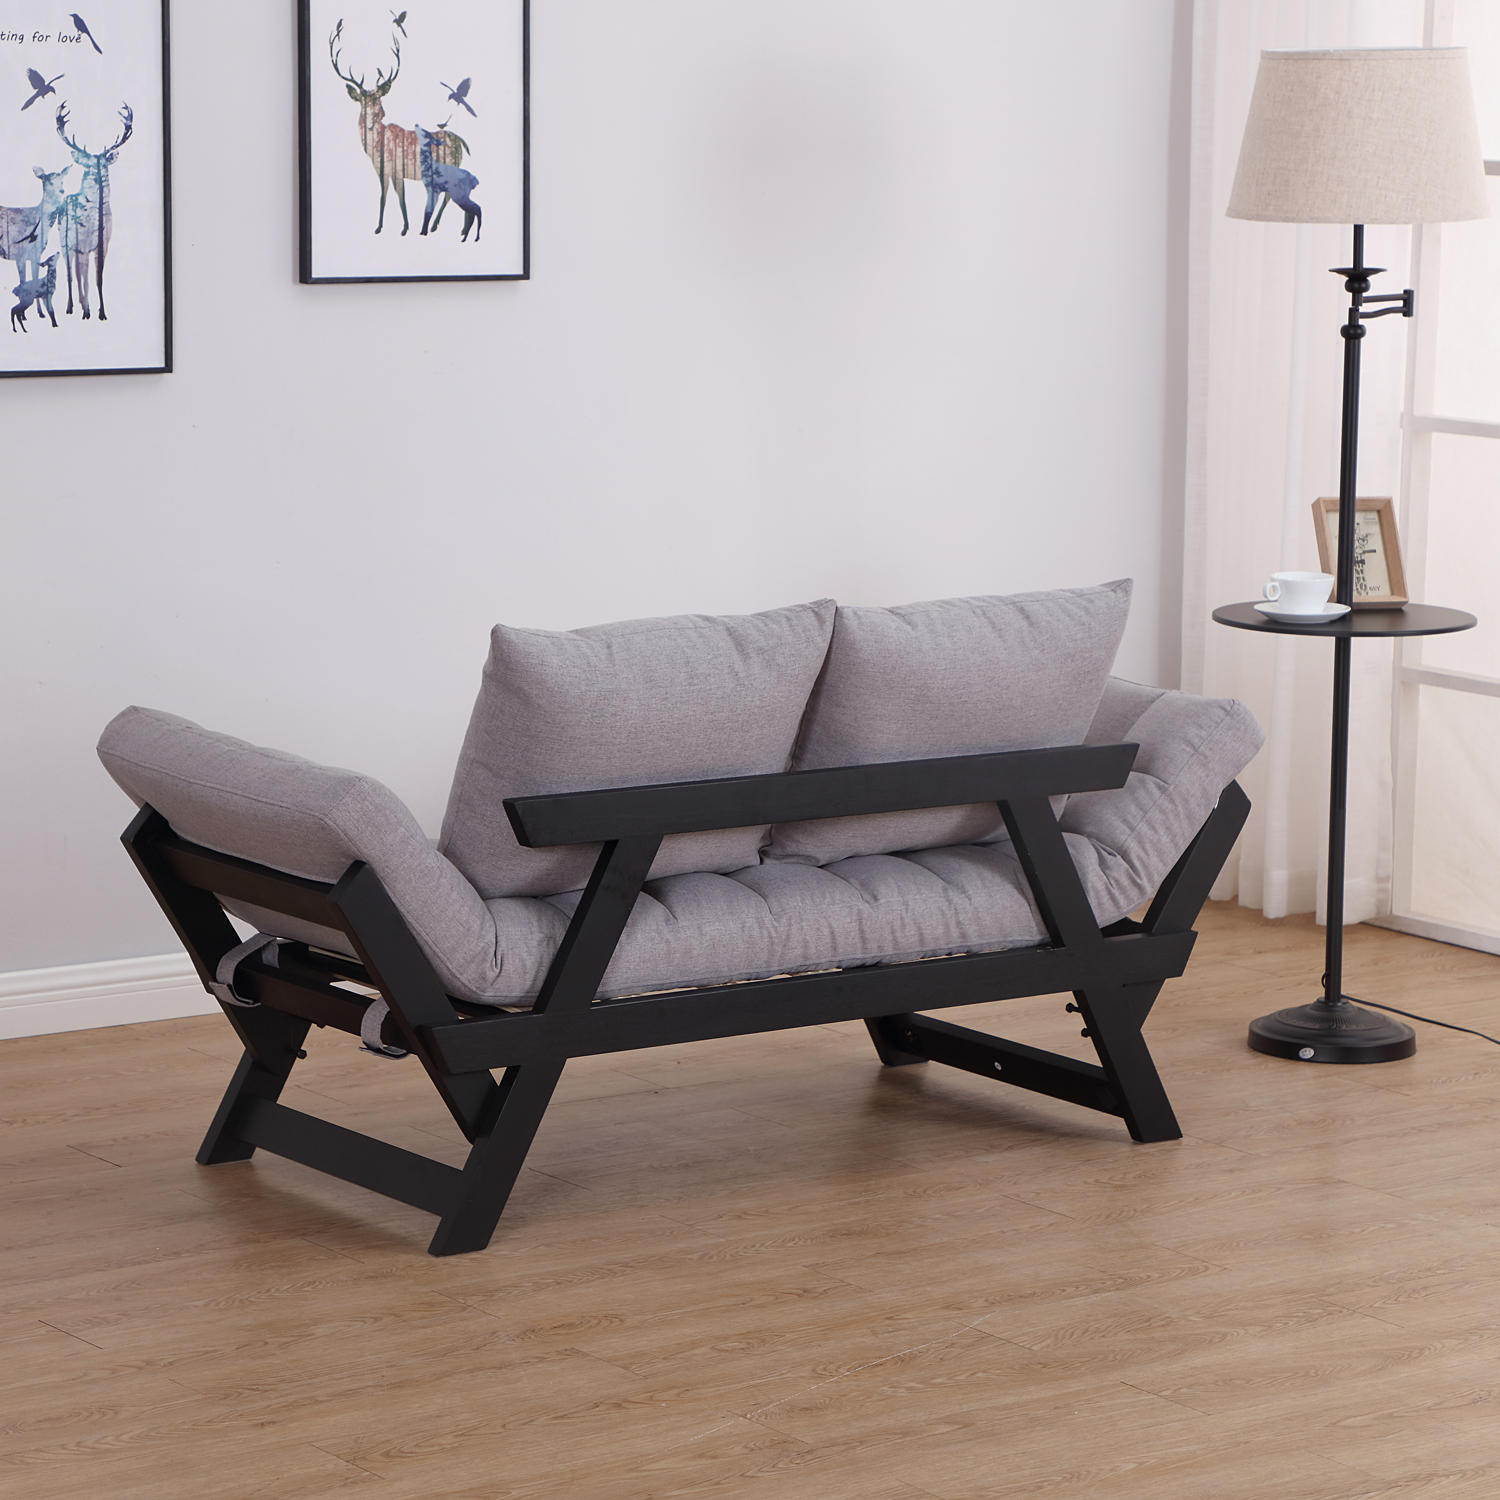 Convertible-Sofa-Bed-Sleeper-Couch-Chaise-Lounge-Chair-Adjustable-Padded-Pillow thumbnail 34